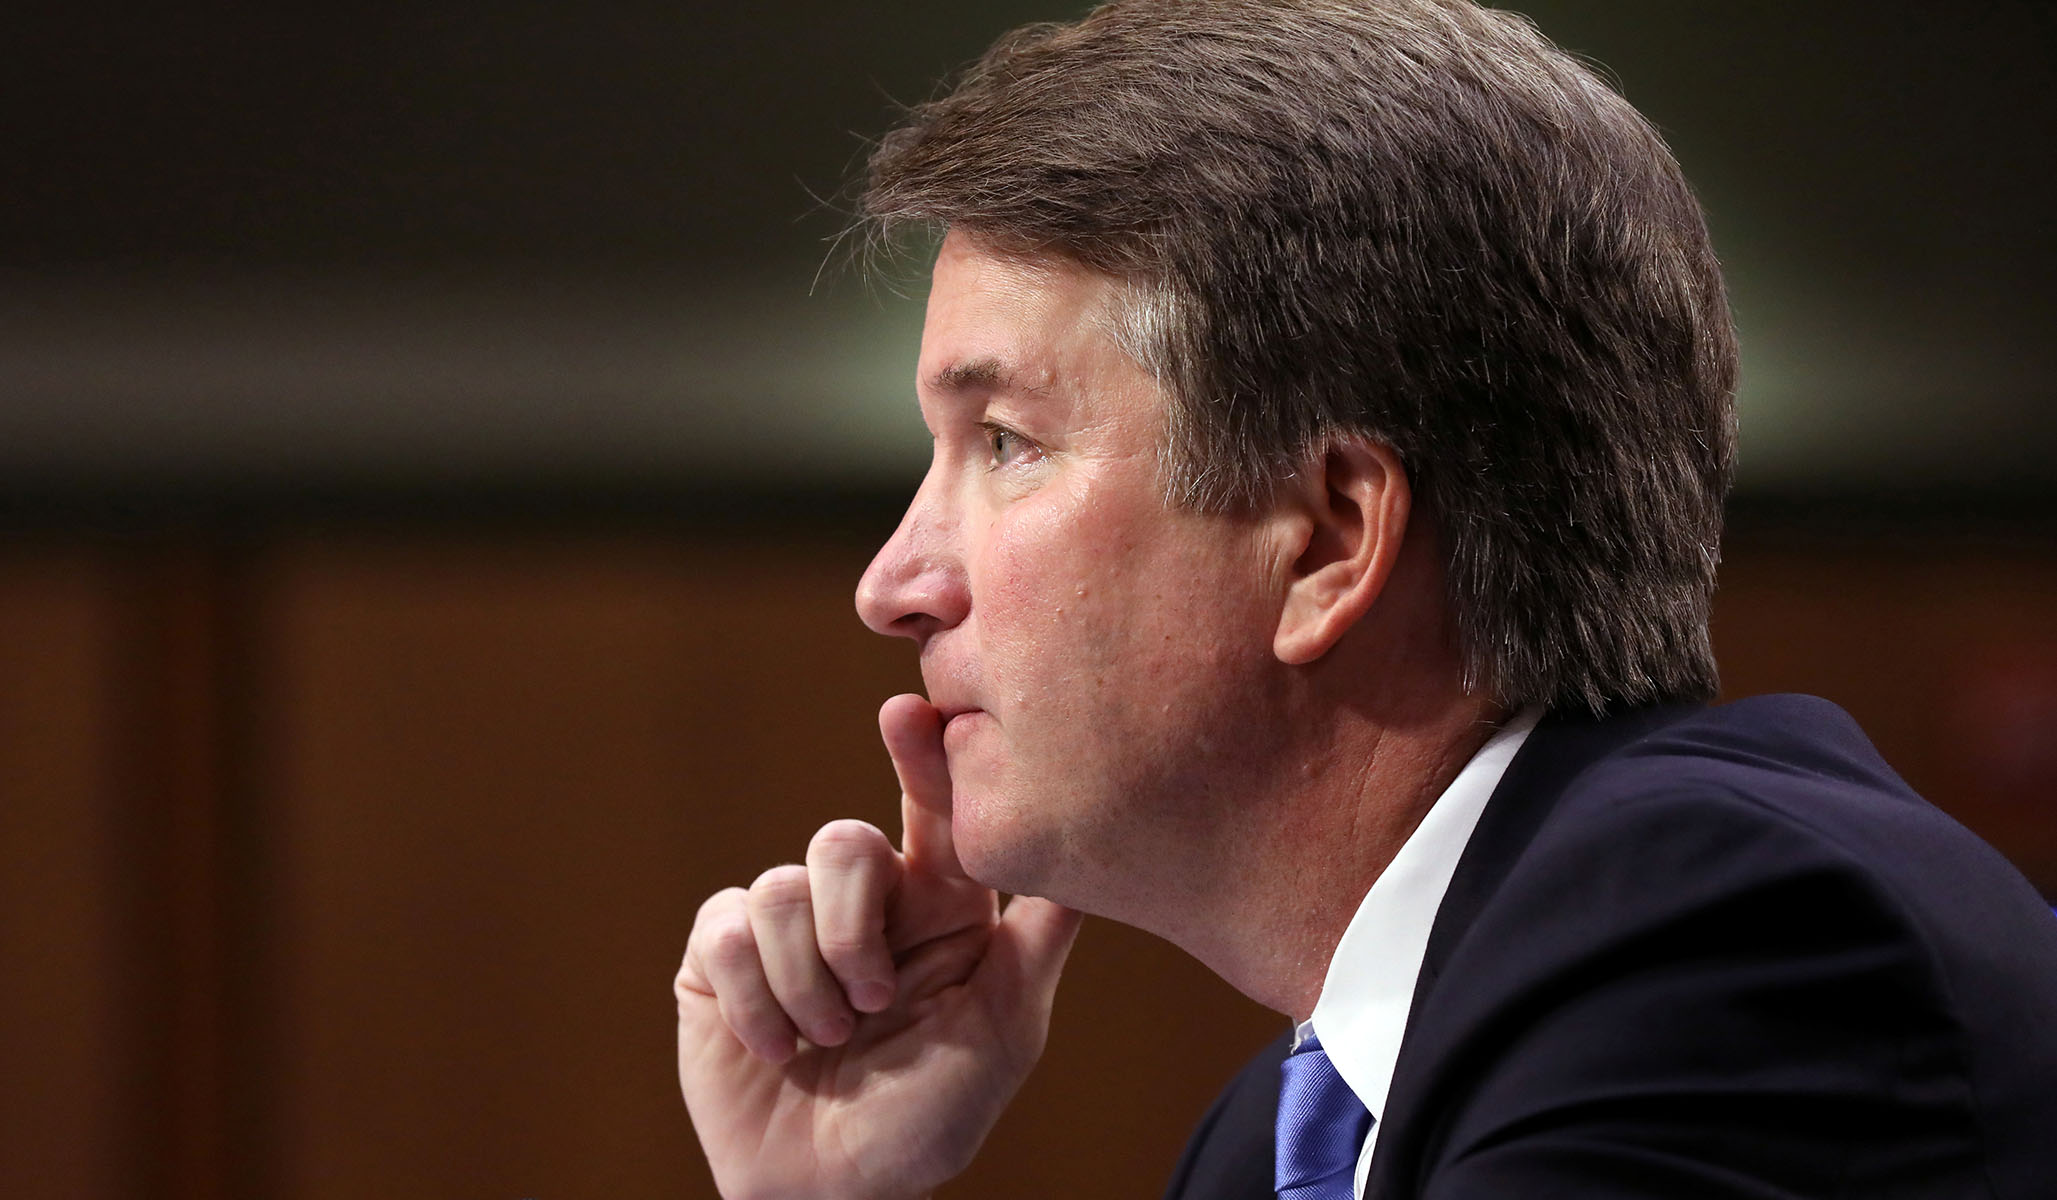 nationalreview.com - Dennis Prager - Brett Kavanaugh Accusations Should Be Ignored